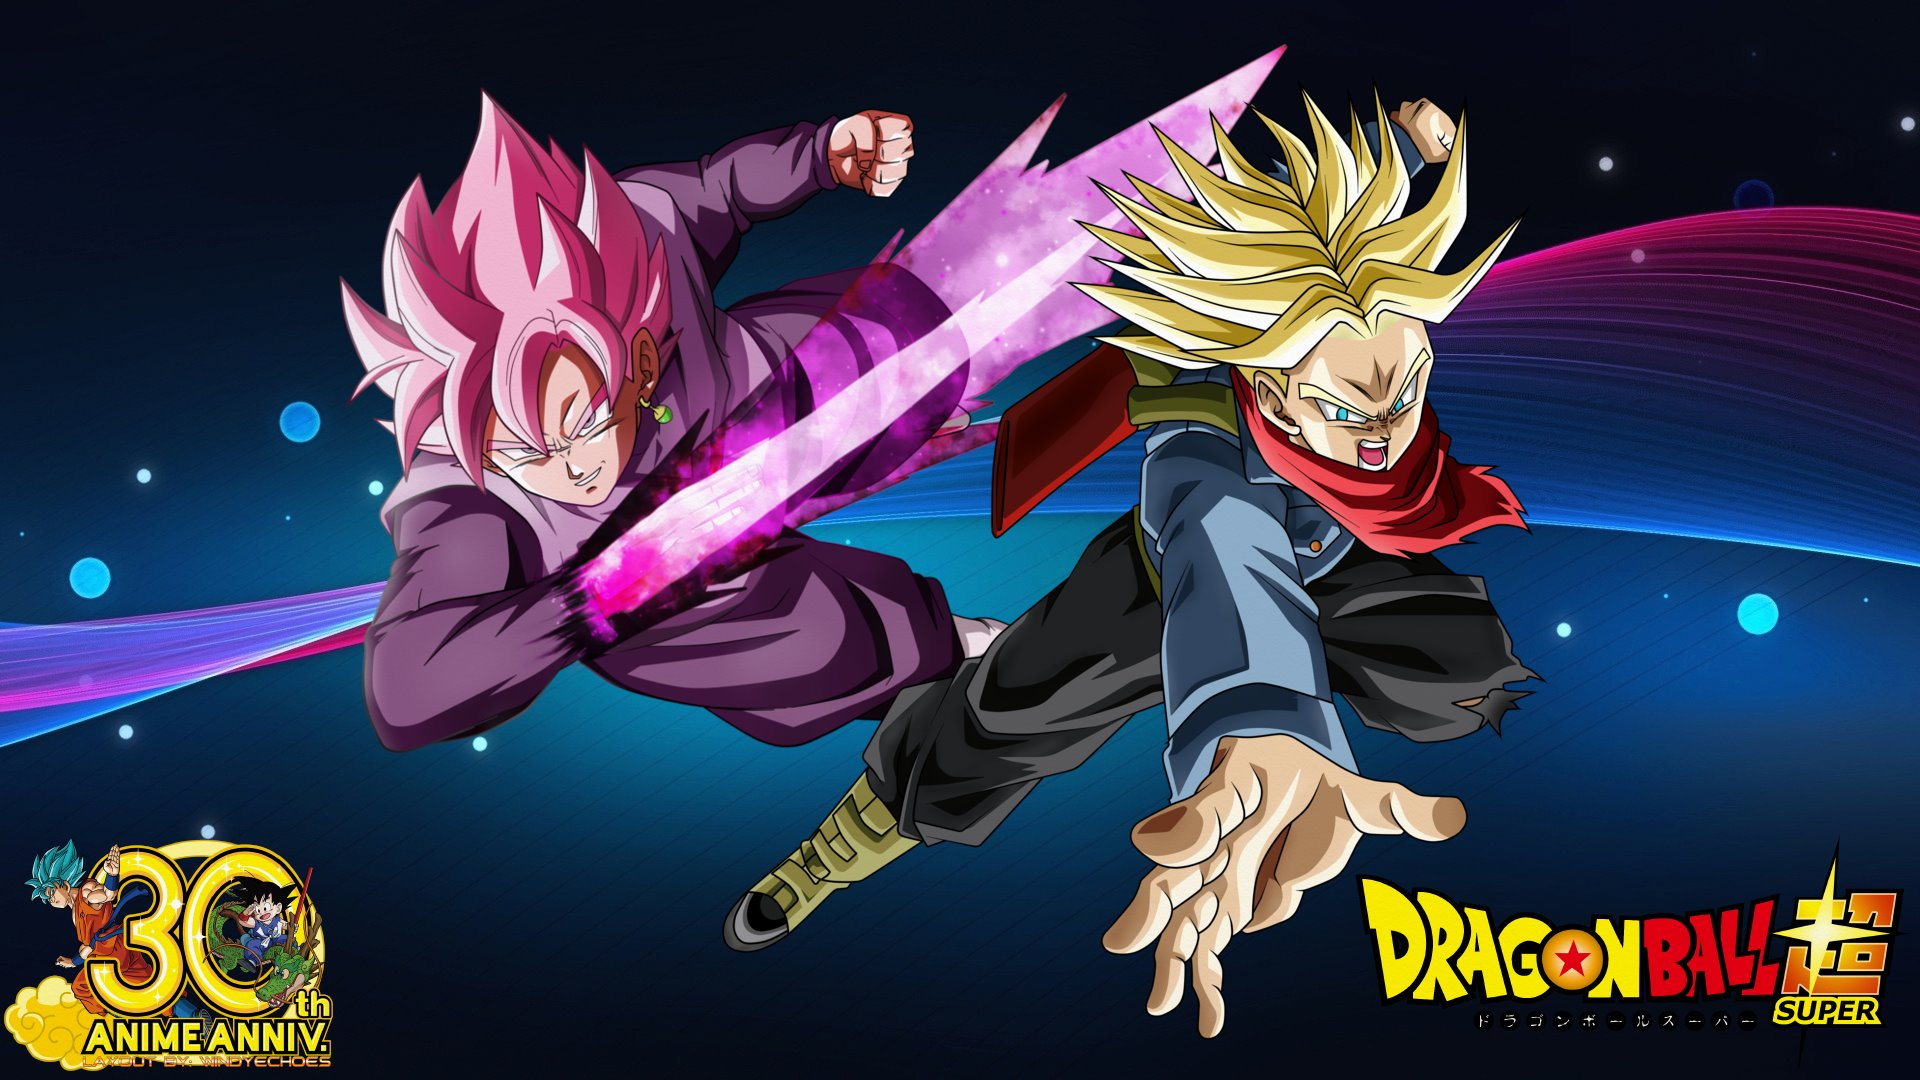 Trunks Hd Wallpaper Posted By Zoey Mercado